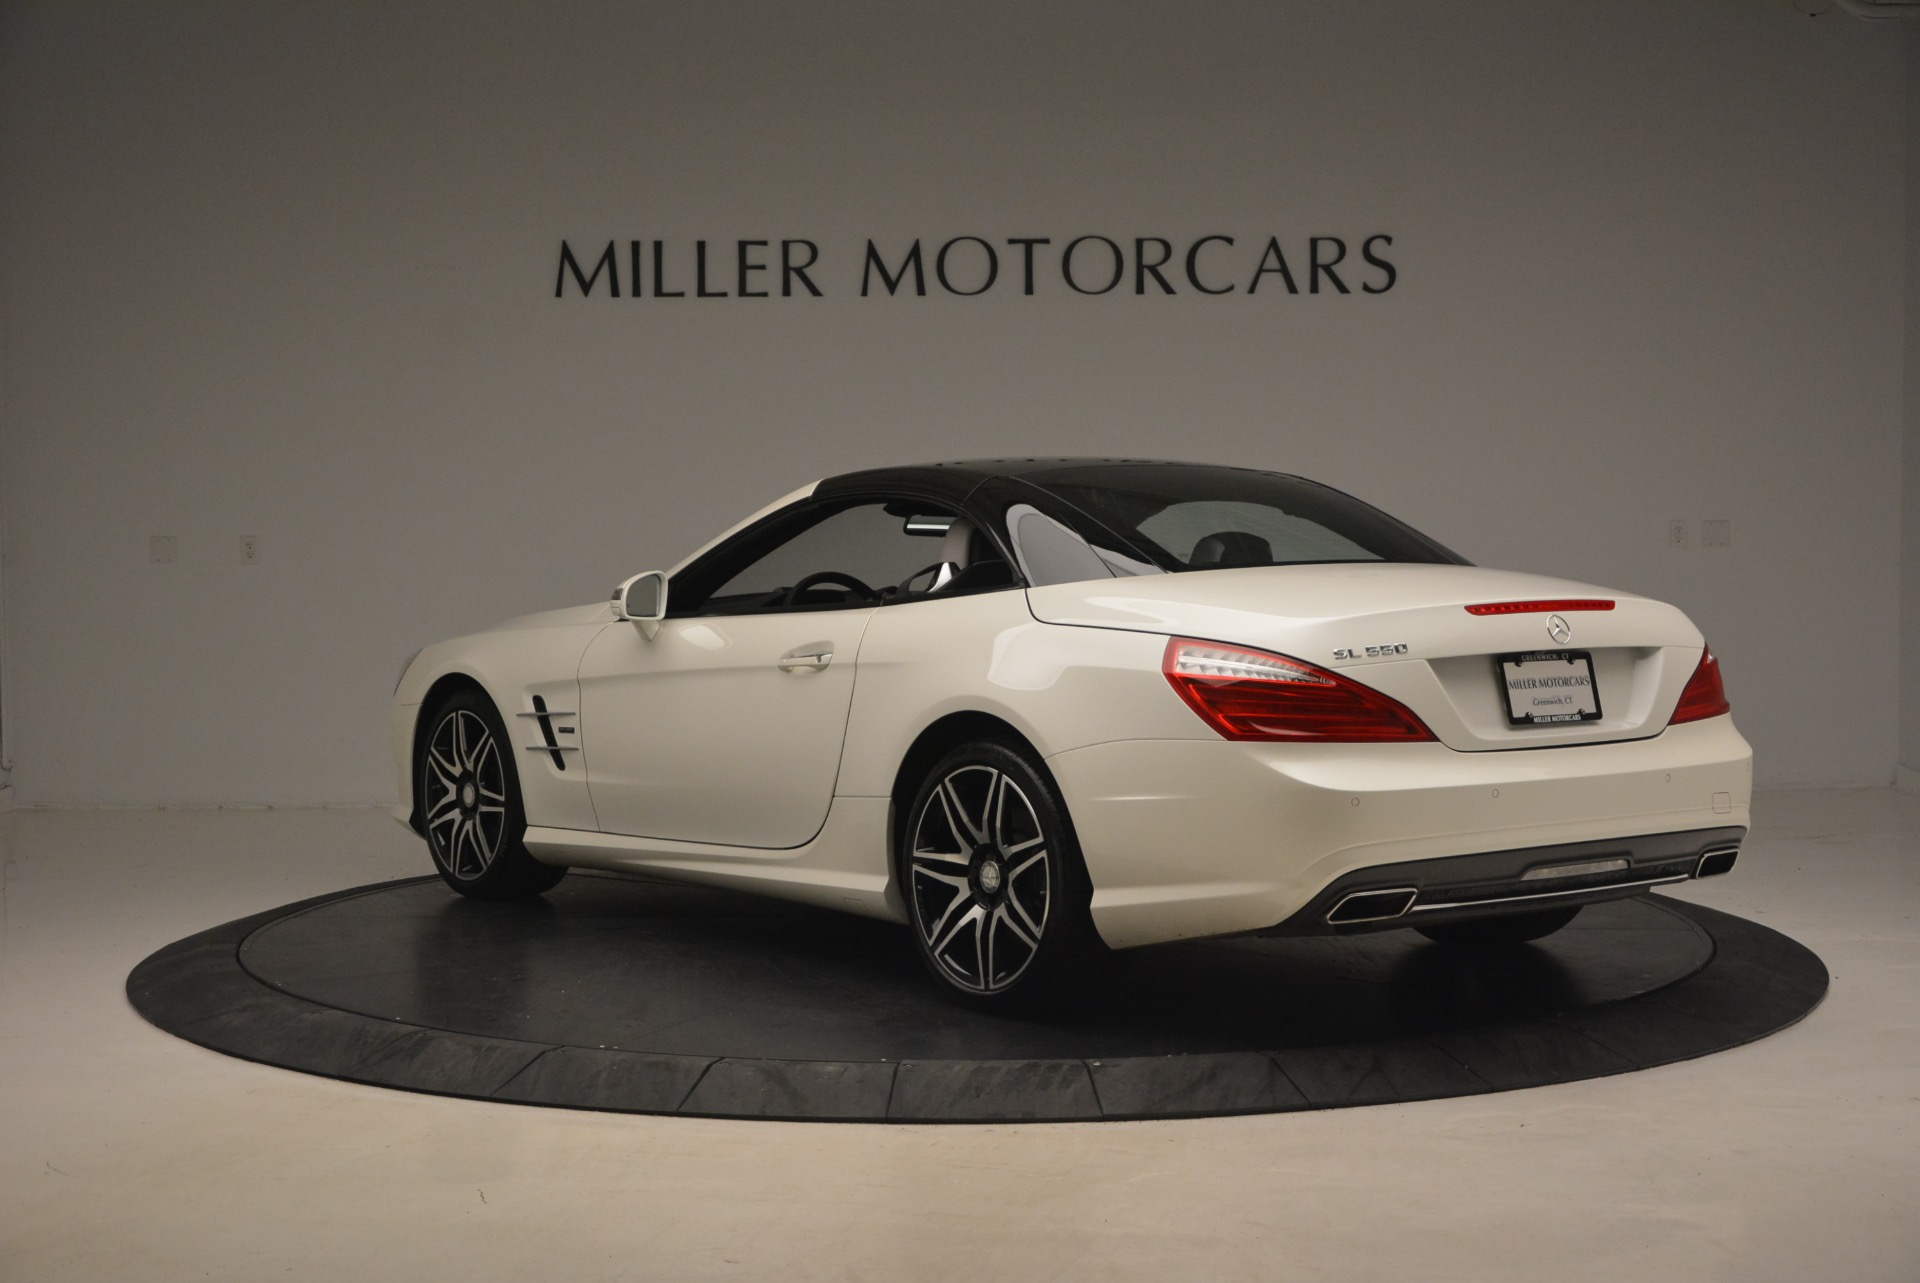 Used 2015 Mercedes Benz SL-Class SL 550 For Sale In Greenwich, CT 1261_p19